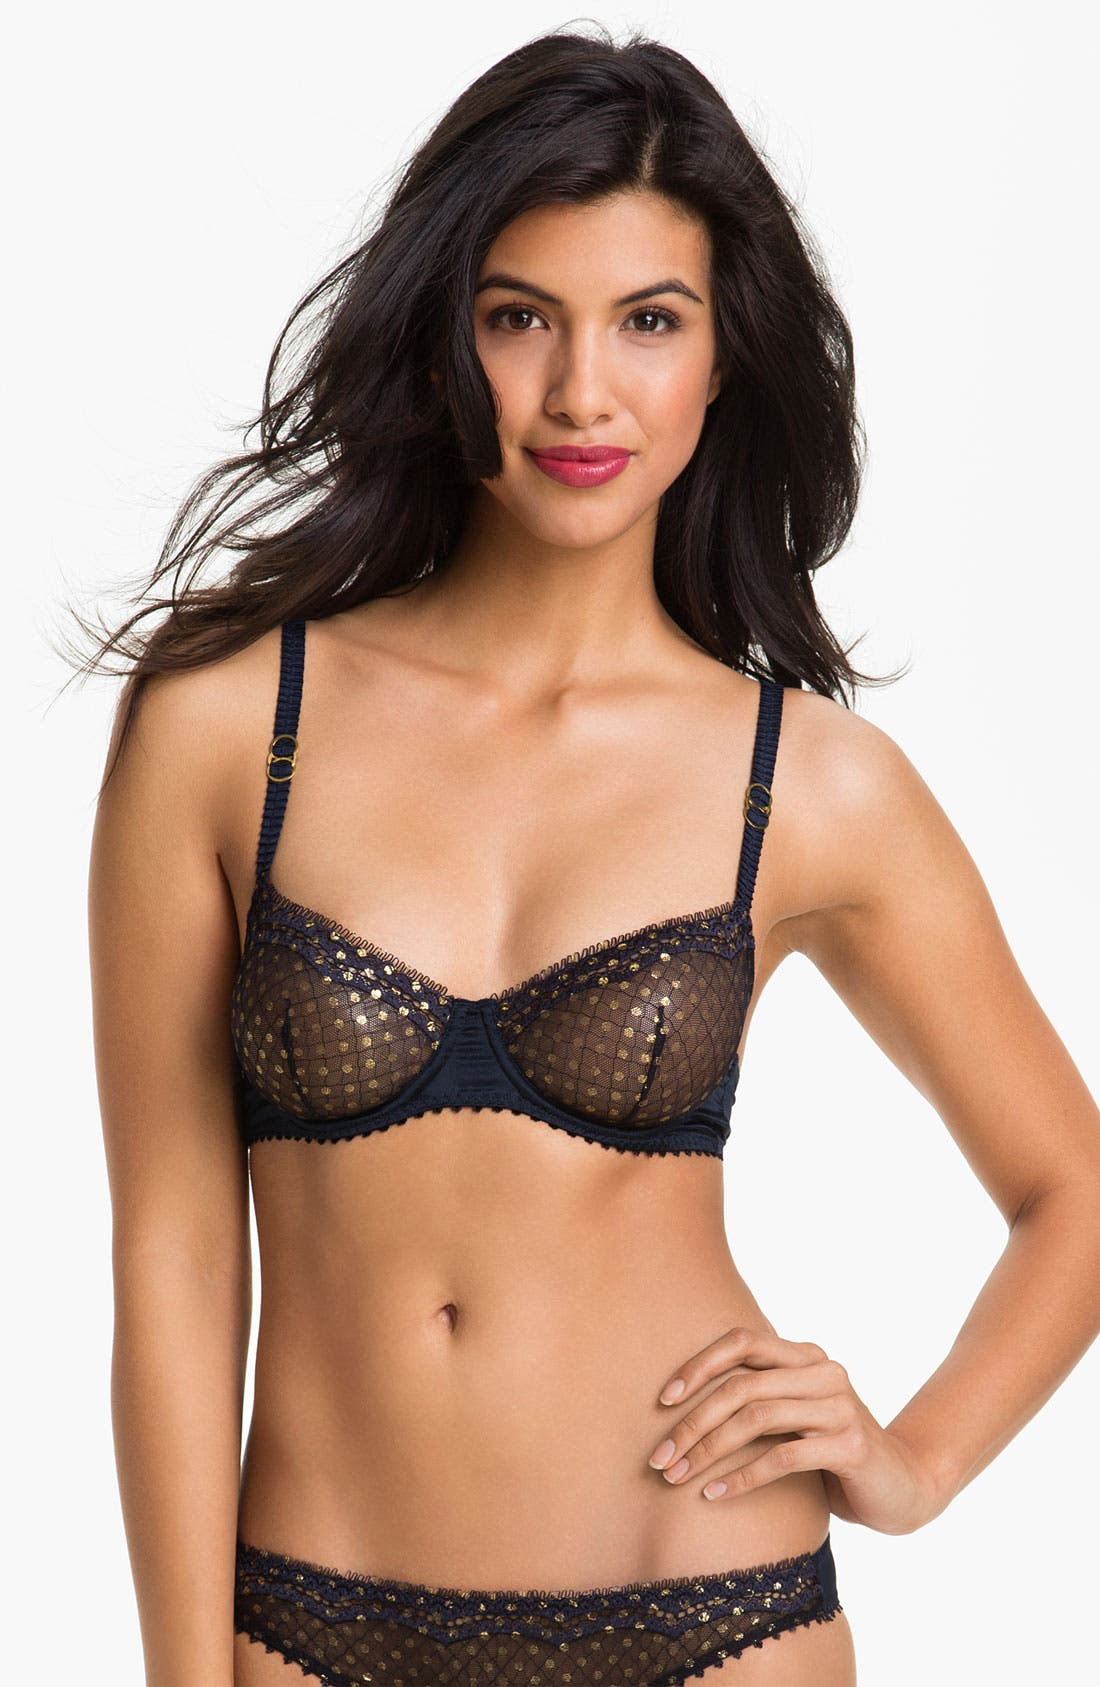 Alternate Image 1 Selected - Stella McCartney 'Emile Peeking' Underwire Balconette Bra